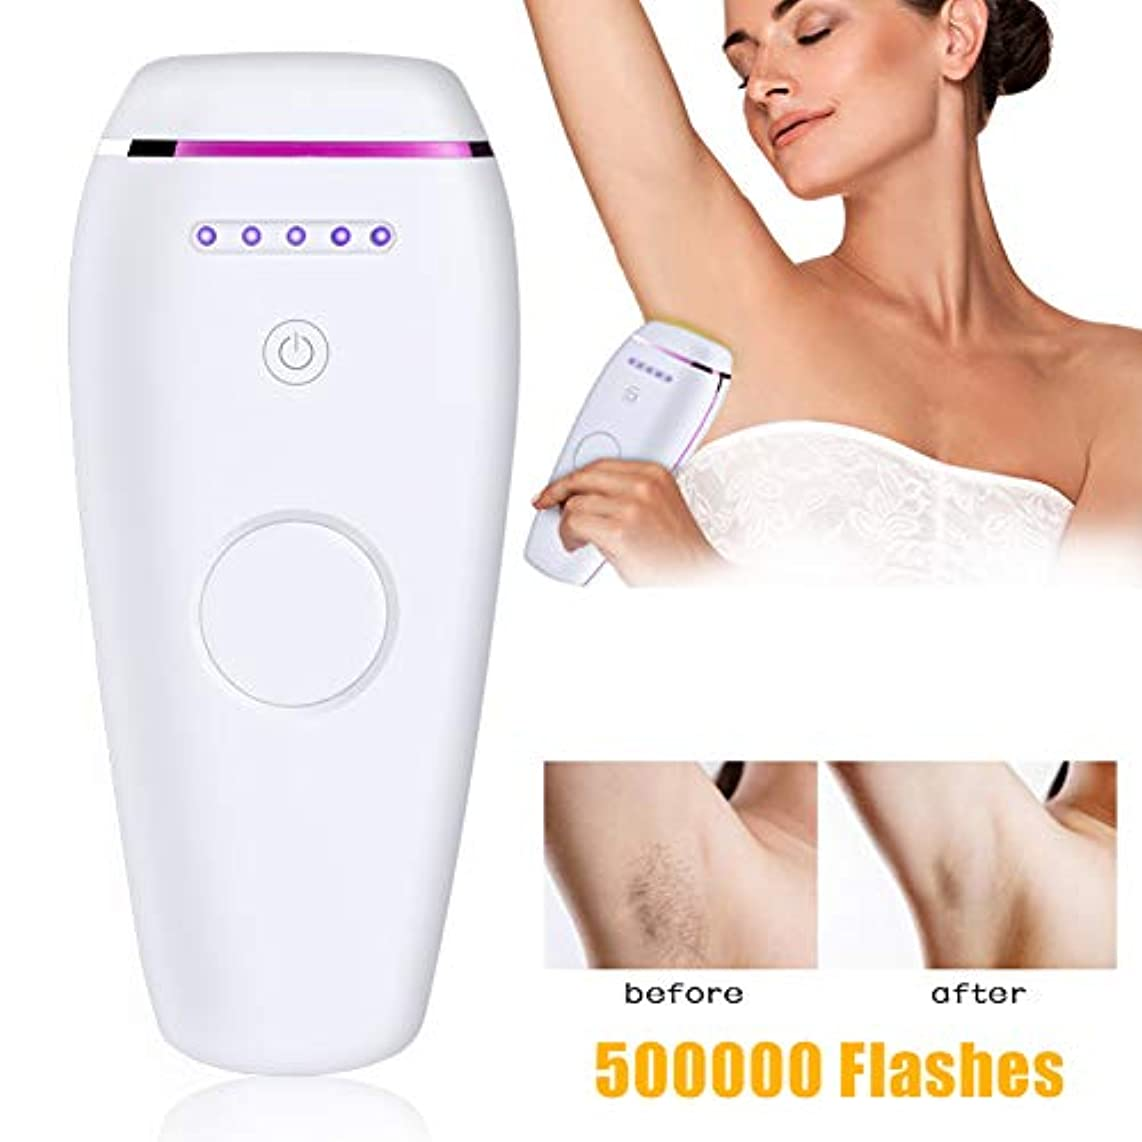 防ぐに応じて悩むNSSZ Home intelligent induction photon hair removal instrument laser skin rejuvenation painless hair removal armpit...